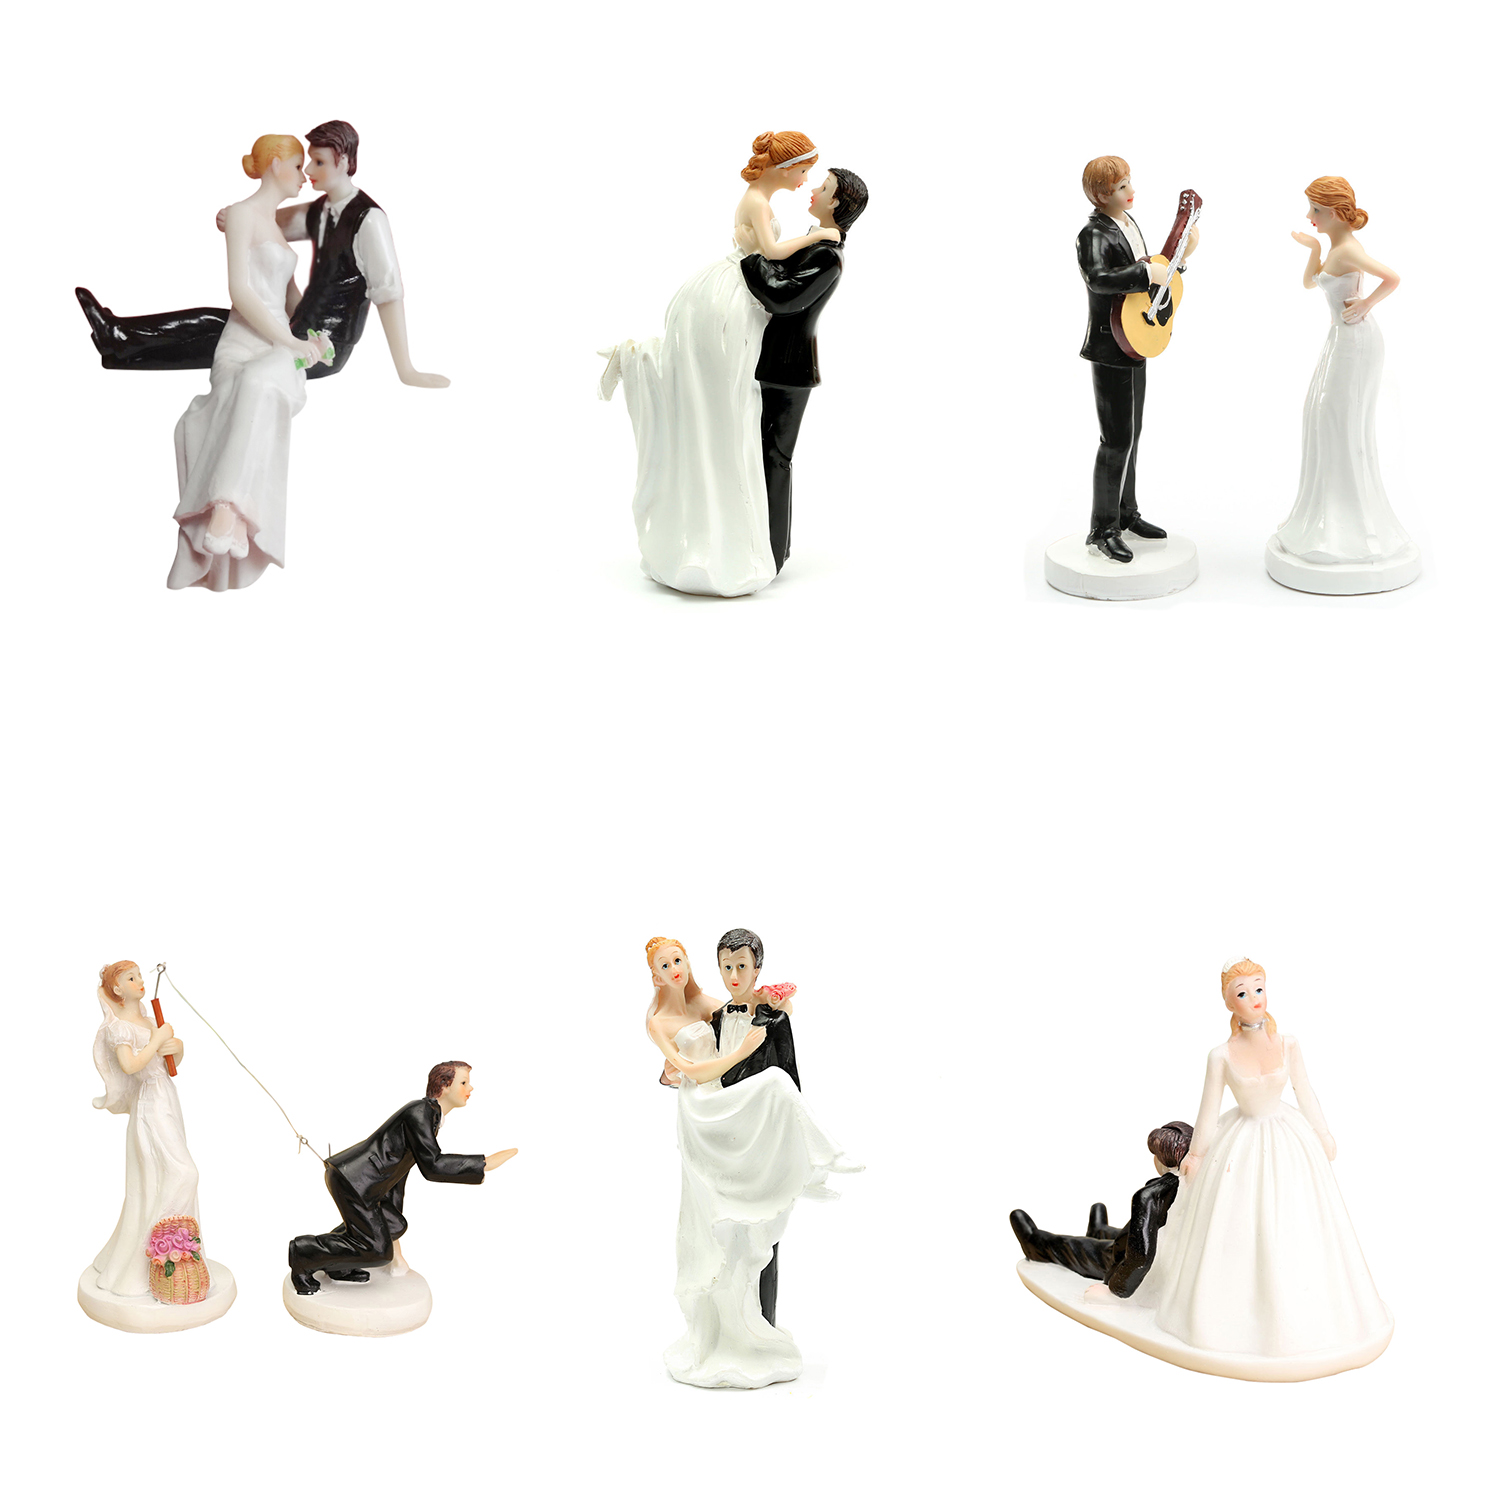 SA FUNNY ROMANTIC WEDDING CAKE TOPPER FIGURE BRIDE GROOM